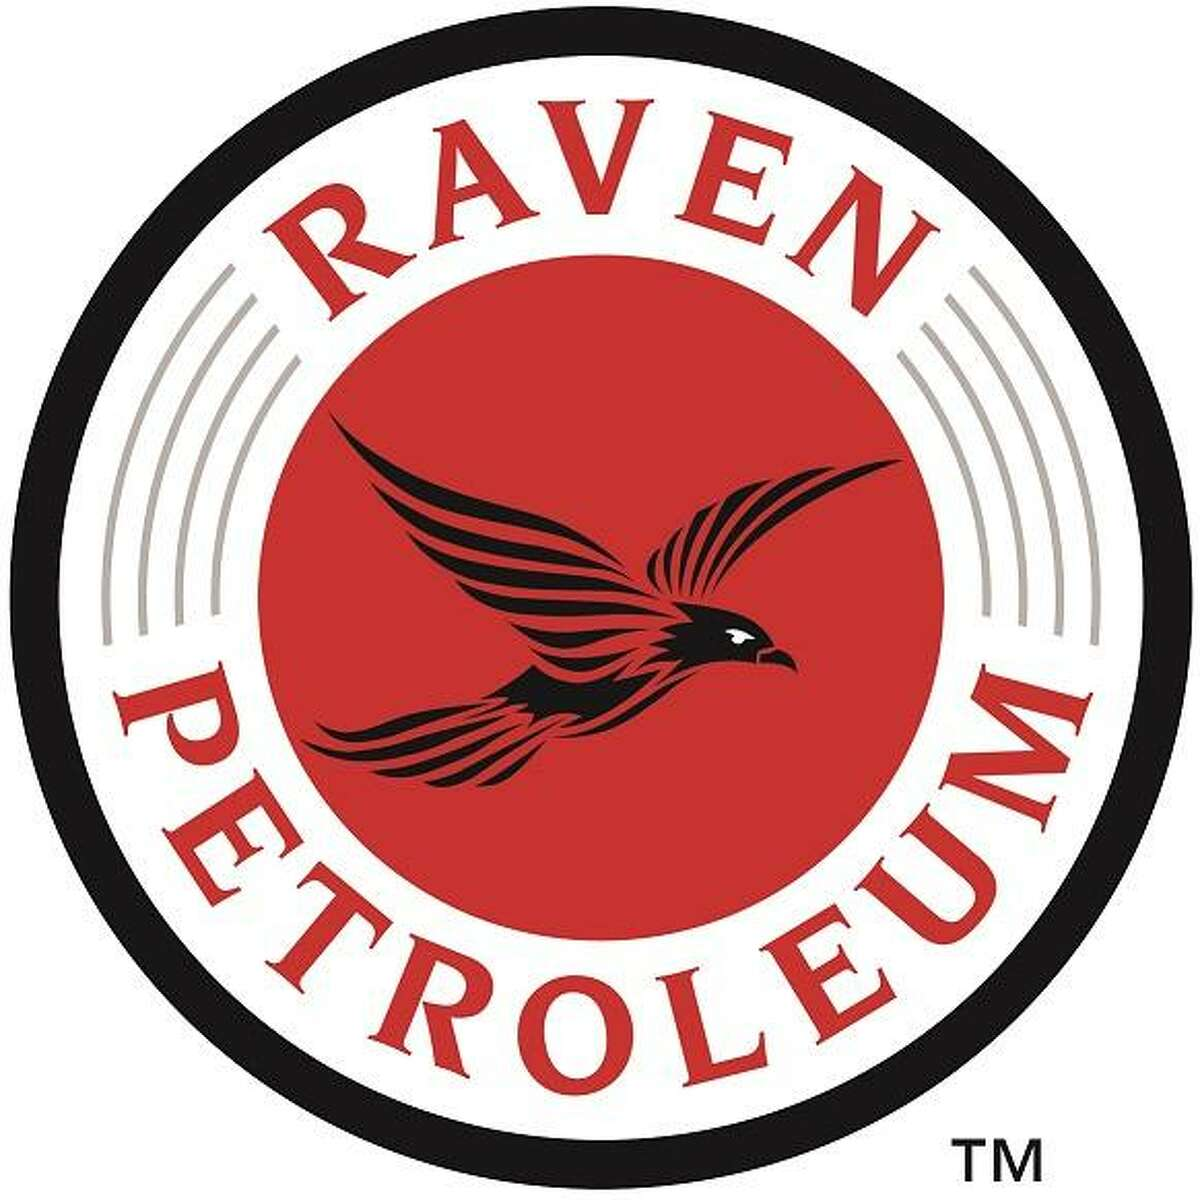 The oil processed by Raven Petroleum's refinery will come from South Texas' Eagle Ford. The light sweet crude is a higher grade petroleum compared to heavy crude oil produced in the Mexico, the Middle East and Venezuela.